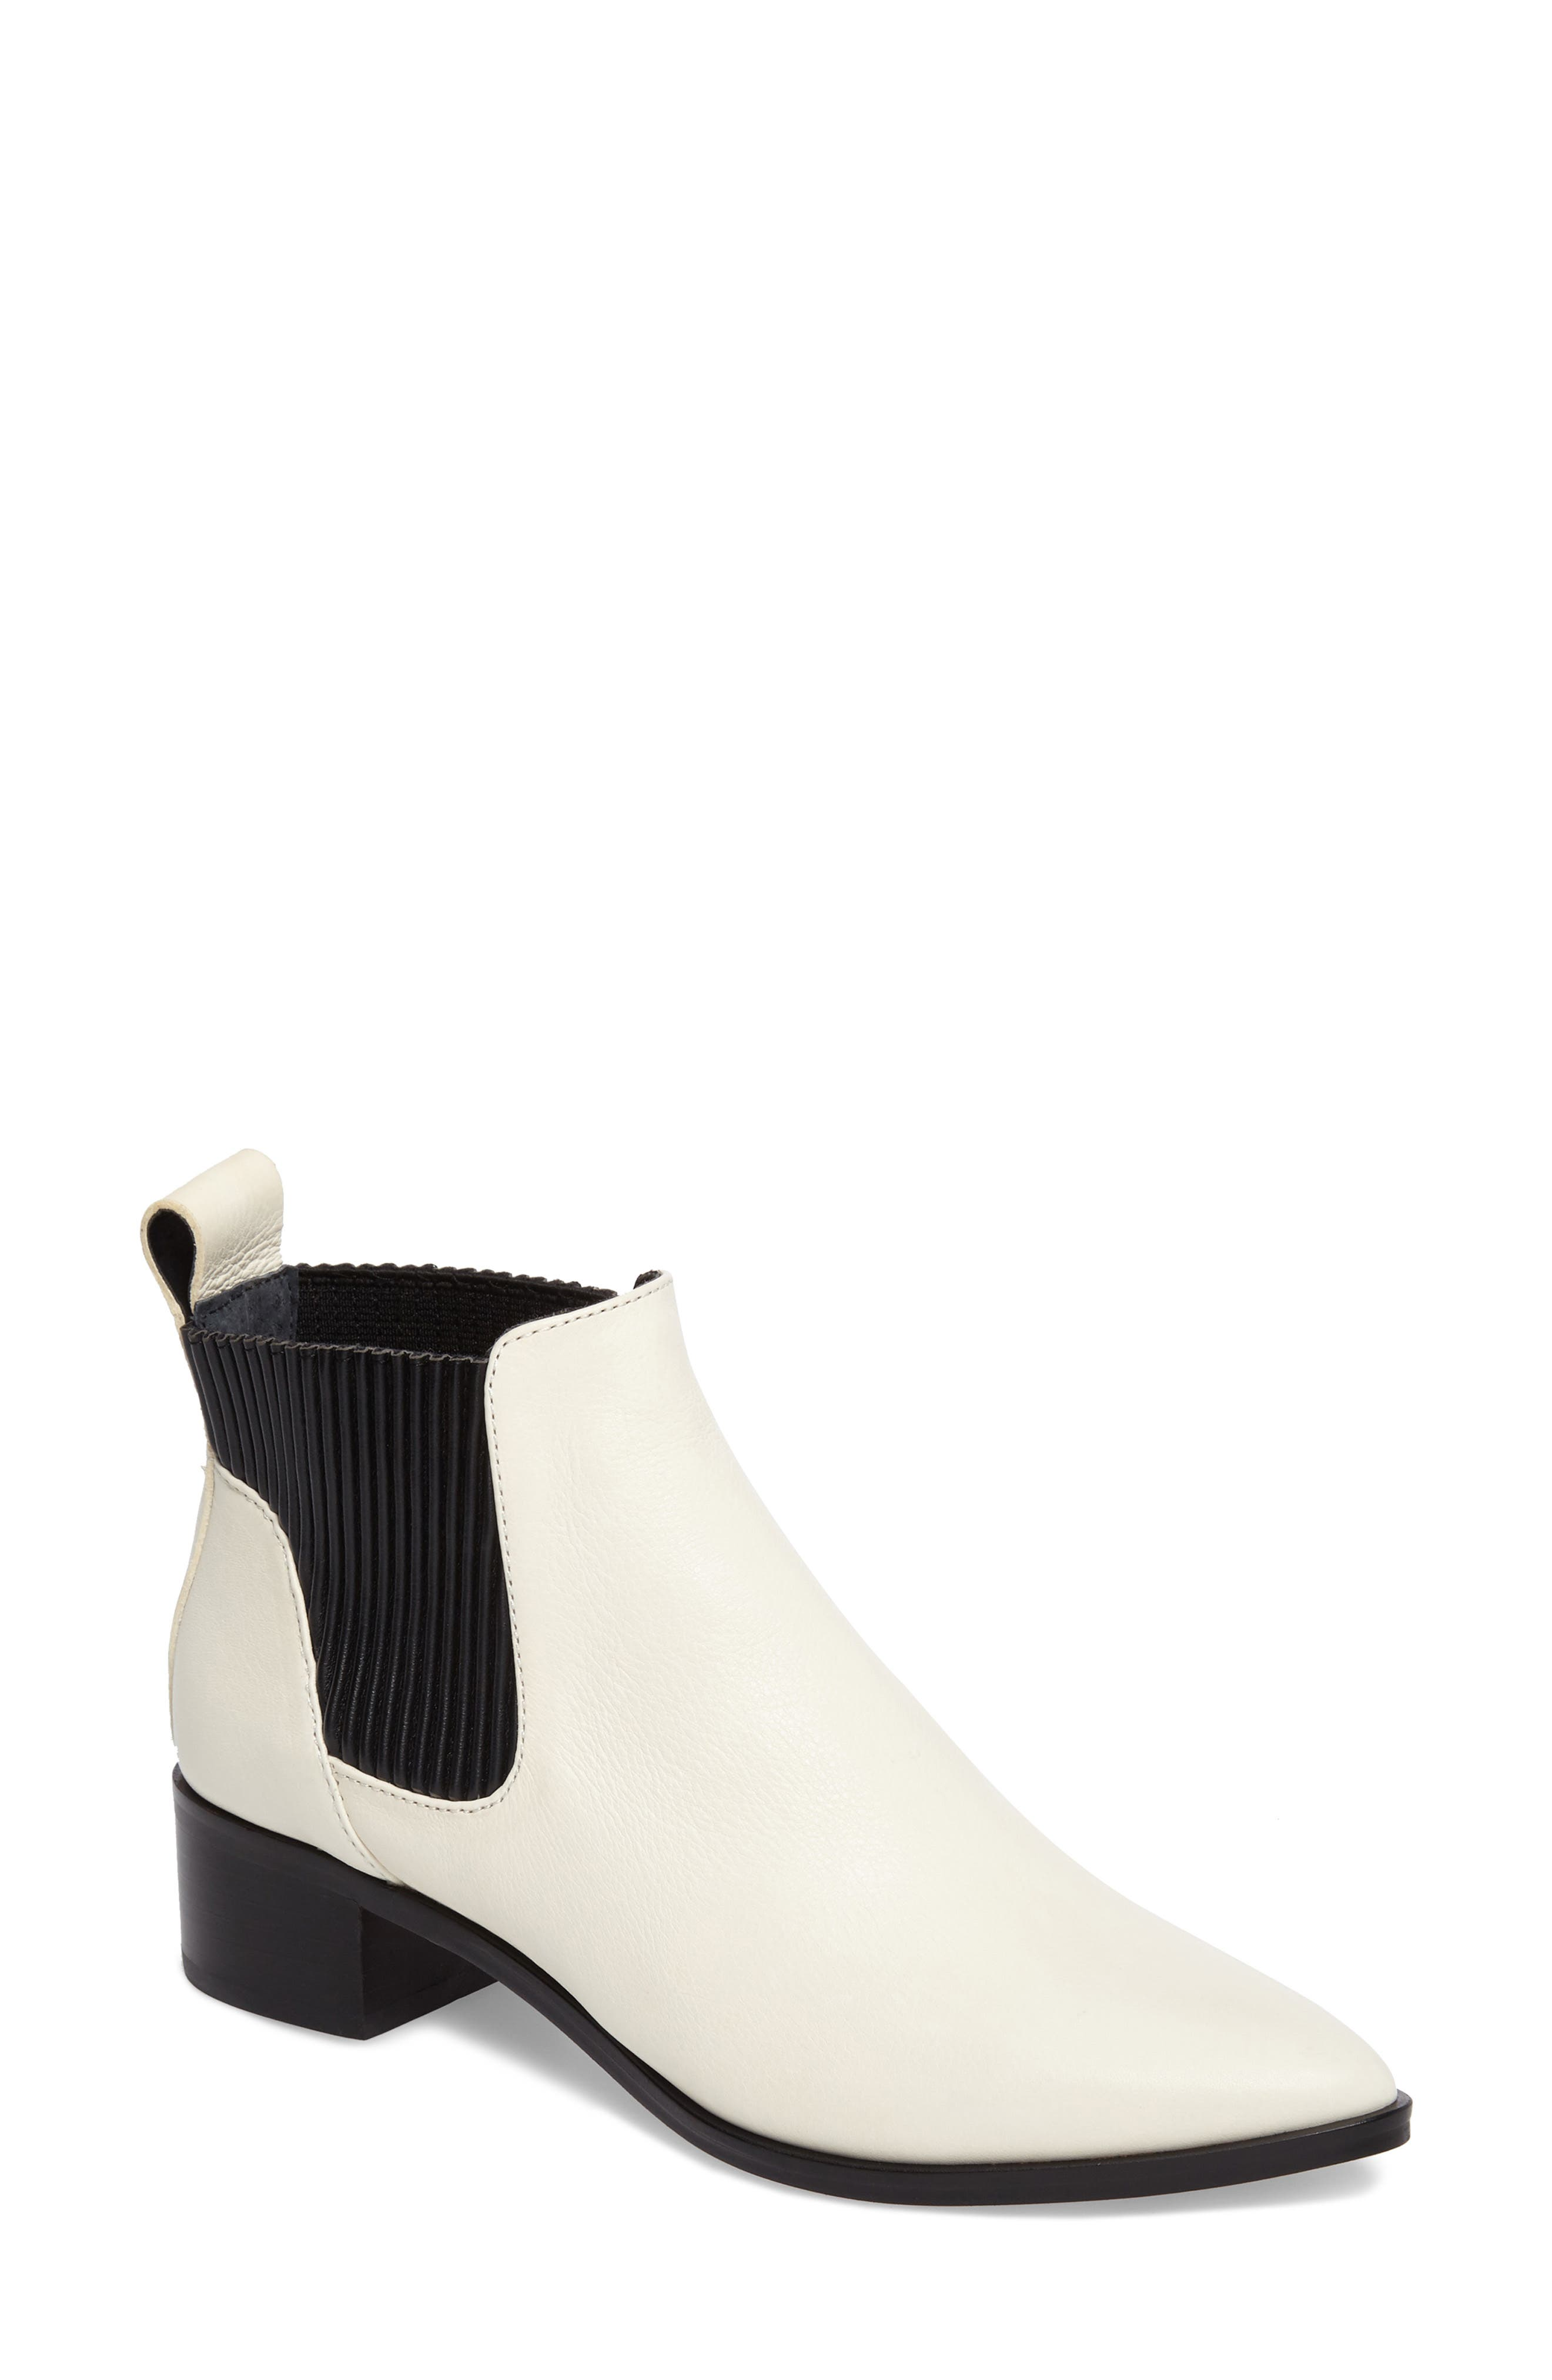 Macie Pointy Toe Chelsea Bootie,                             Main thumbnail 1, color,                             Off White Lea